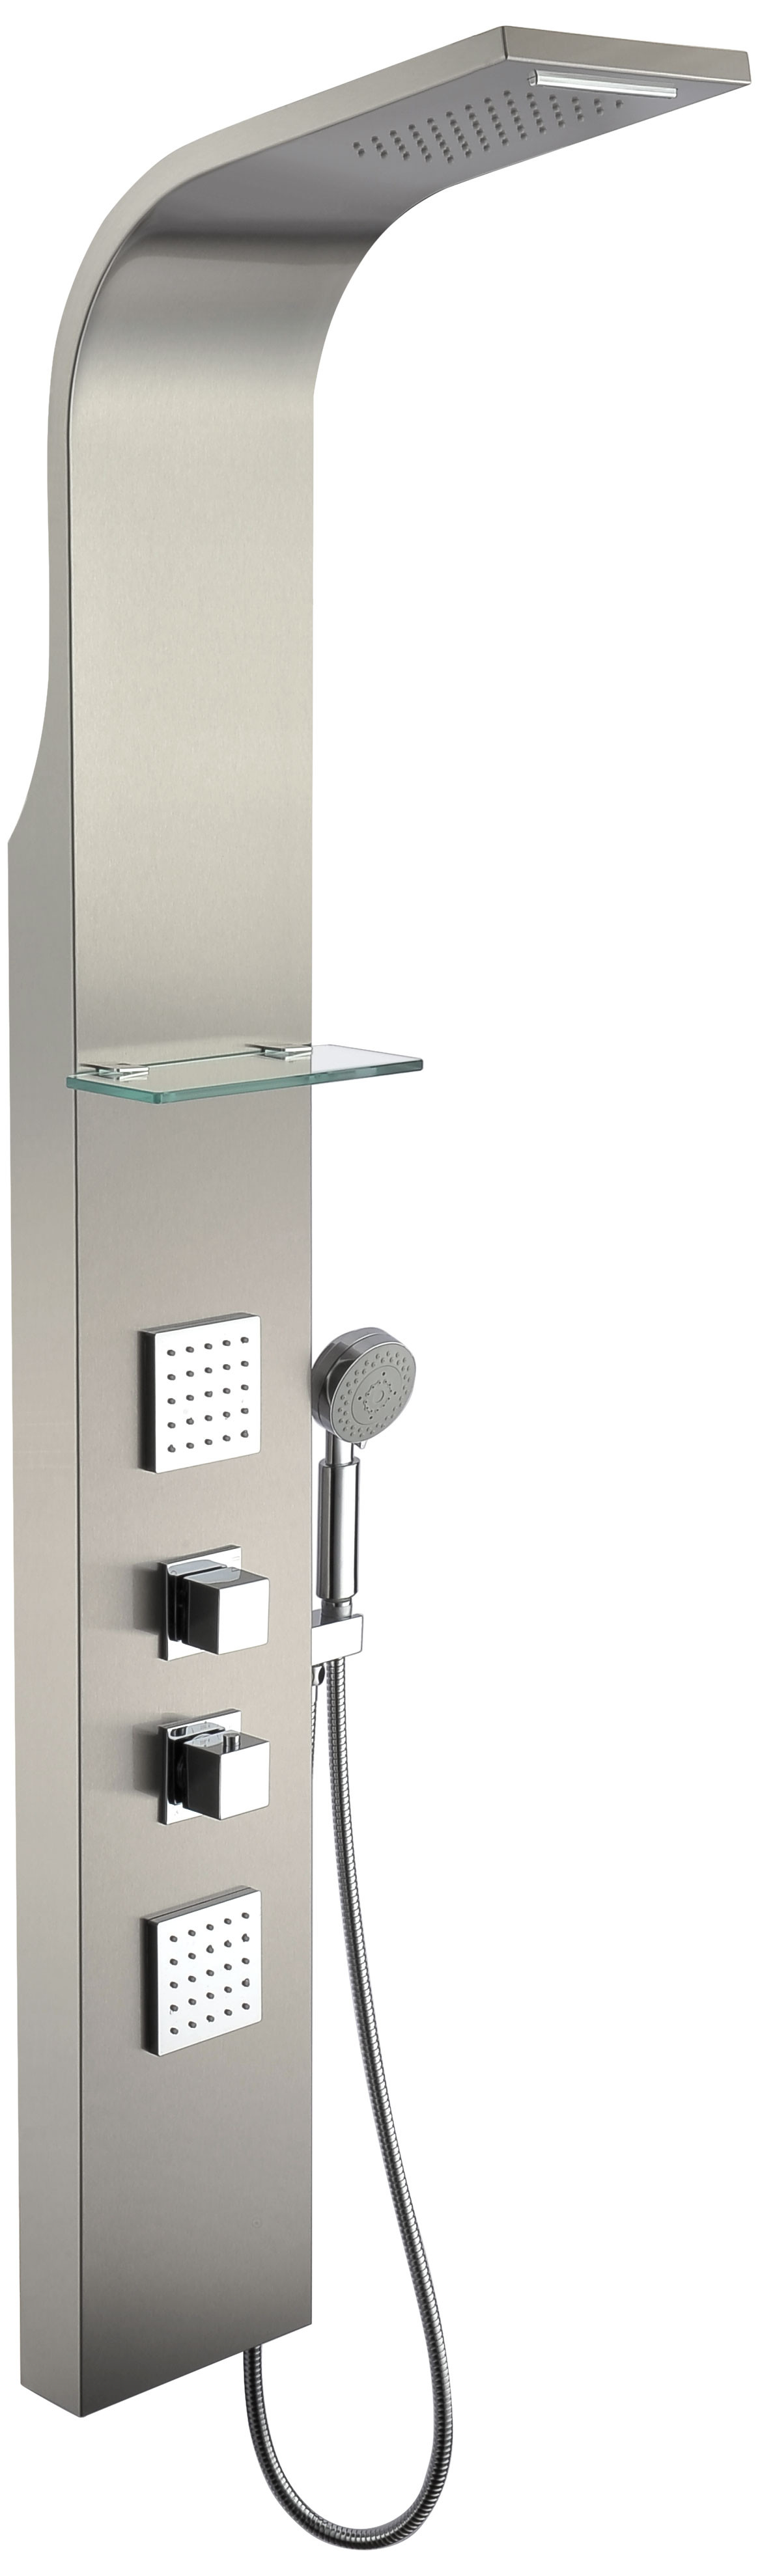 ANZZI SP-AZ023 Niagara Thermostatic Shower Panel In Brushed Stainless Steel